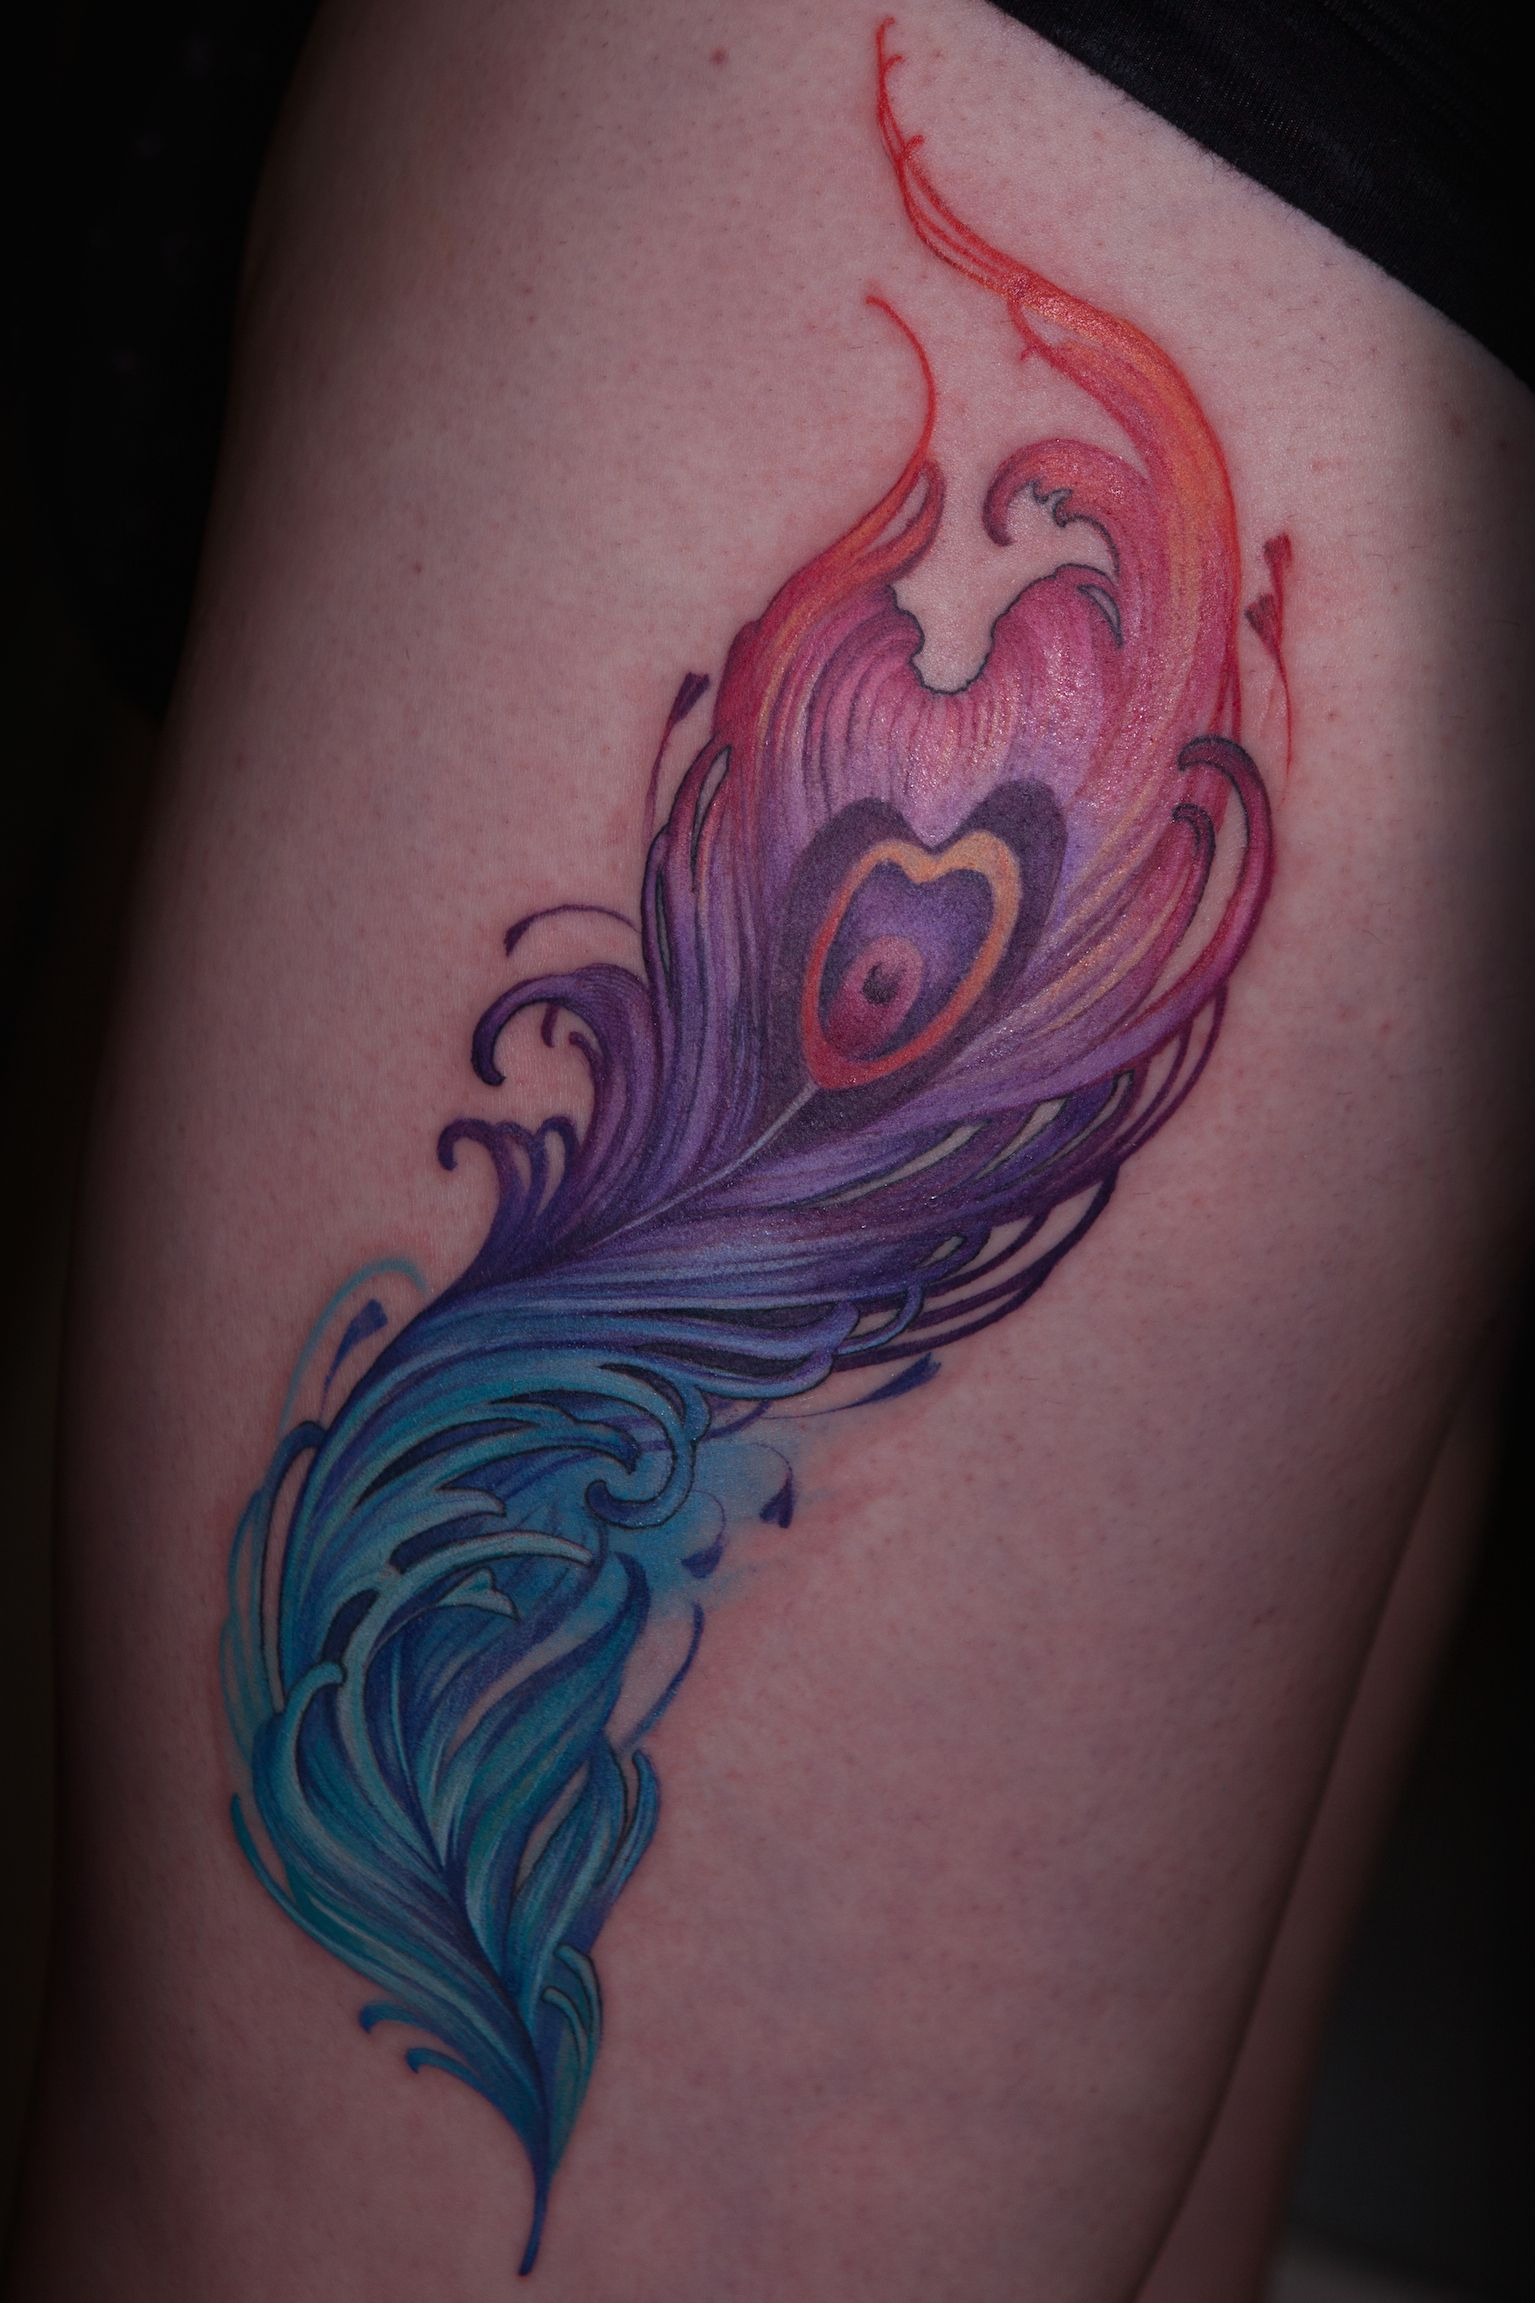 Colorful phoenix tattoo designs - Colorful Seahorse Jump From Water Tattoo Design Photo 5